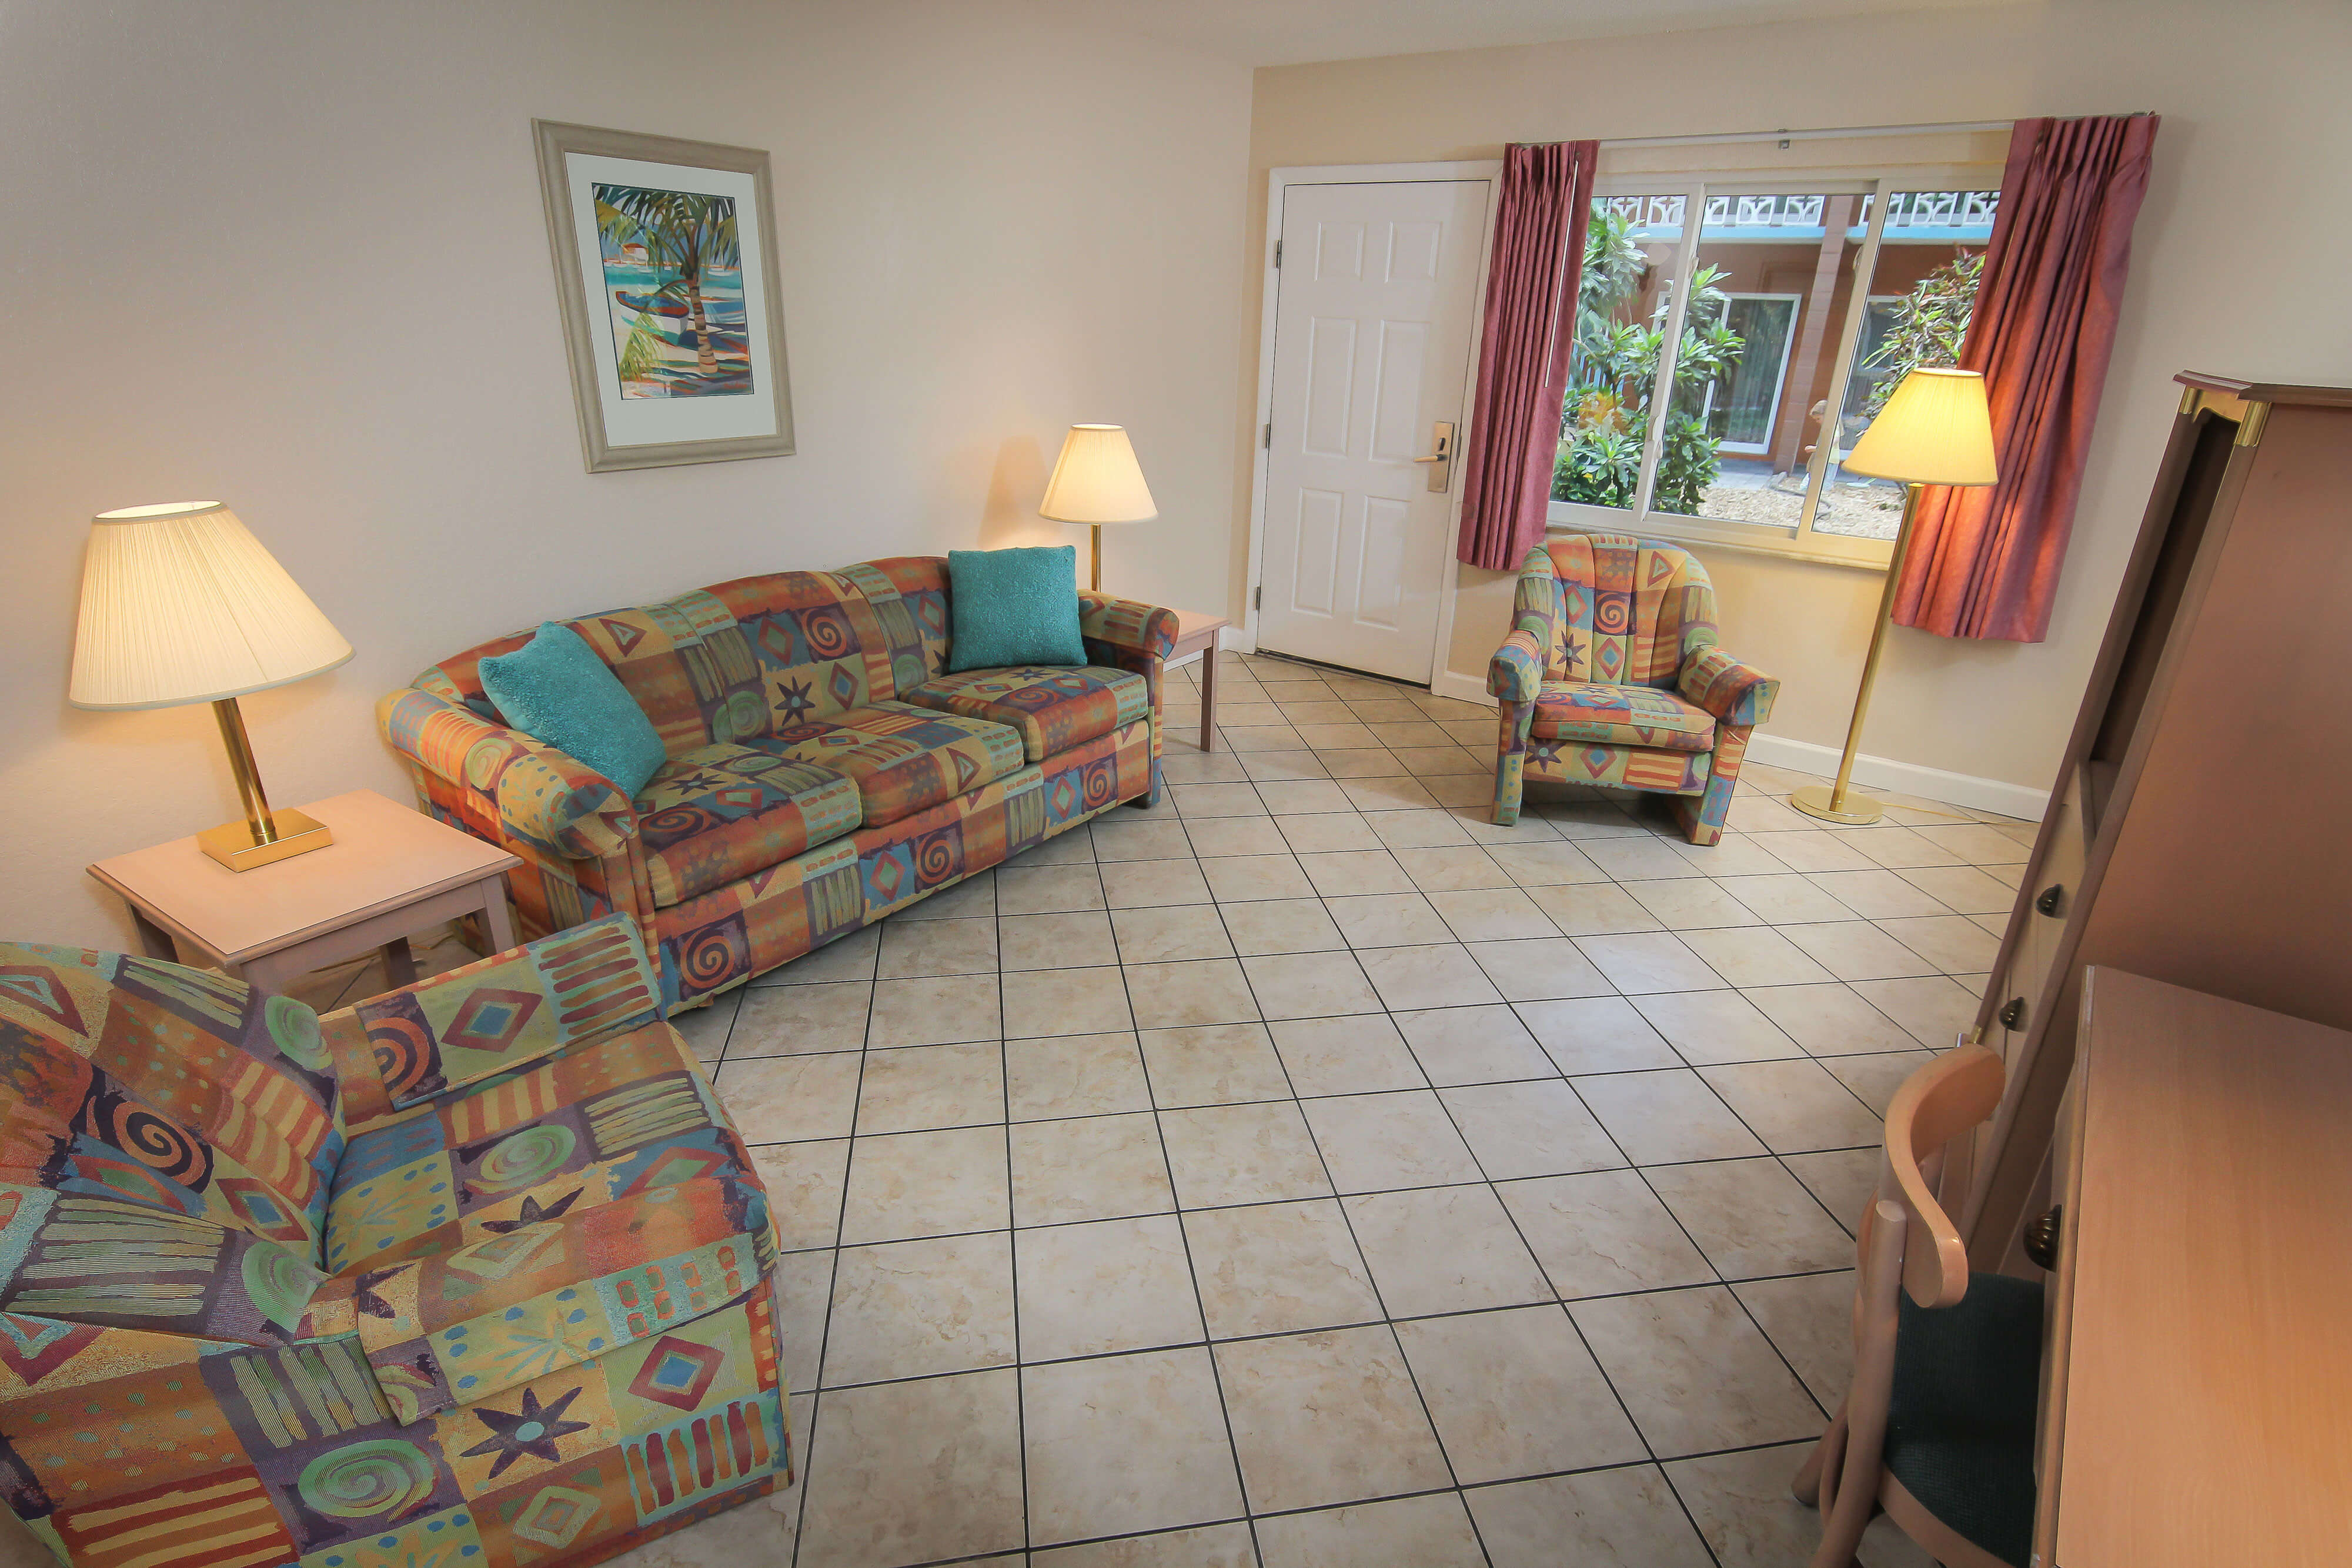 2 Bedroom Suites in Cocoa Beach at our Cocoa Beach Suites Hotel Cocoa Beach FL | Wakulla Suites A Westgate Resort | Westgate Cocoa Beach Resorts